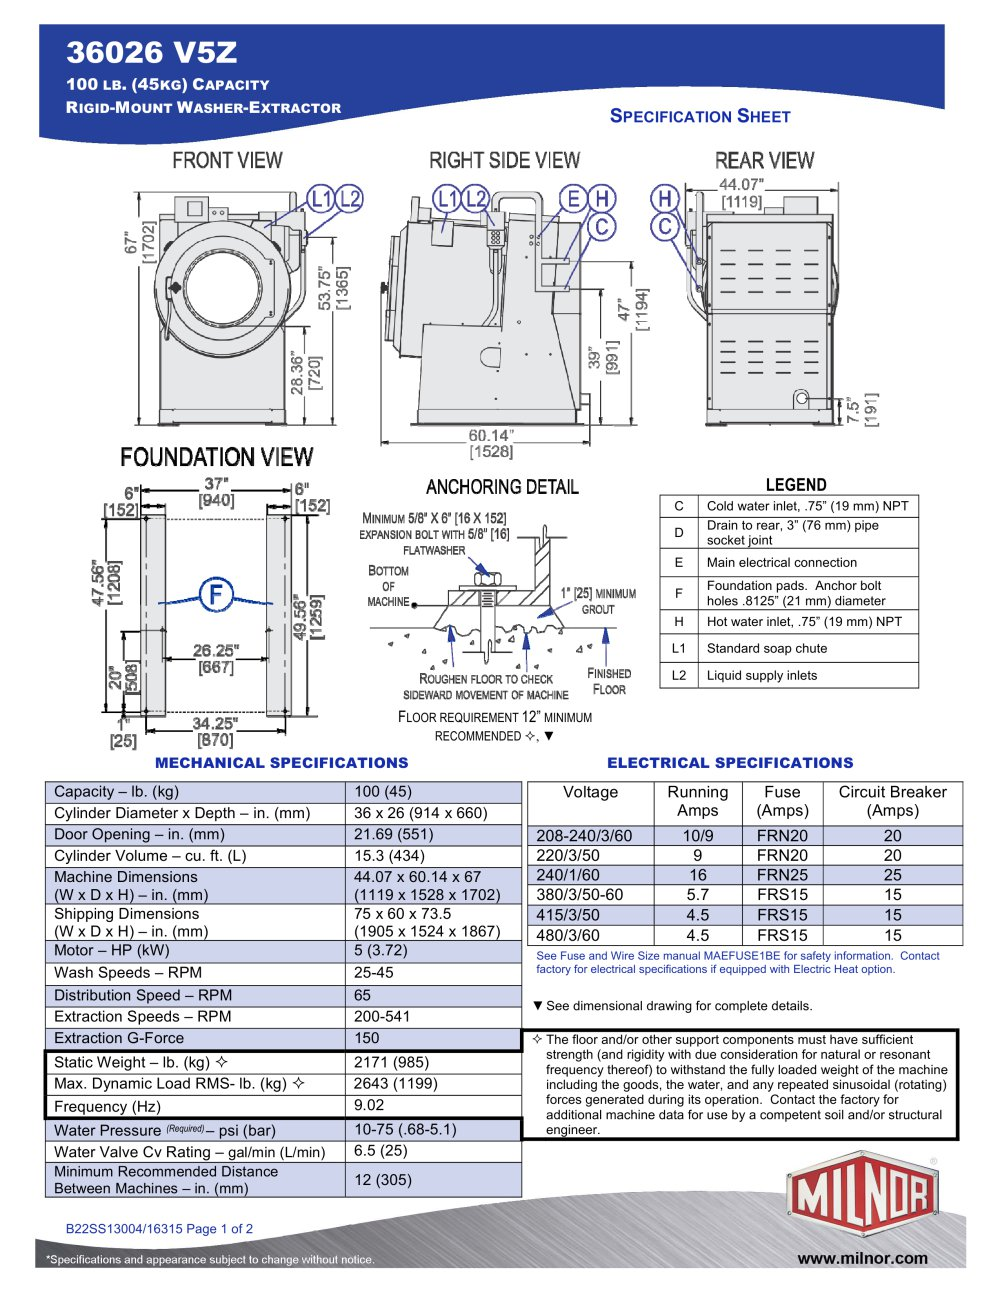 36026v5z milnor pdf catalogues documentation brochures rh pdf archiexpo com Dryer Plug Wiring Diagram 4 Prong Dryer Wiring Diagram